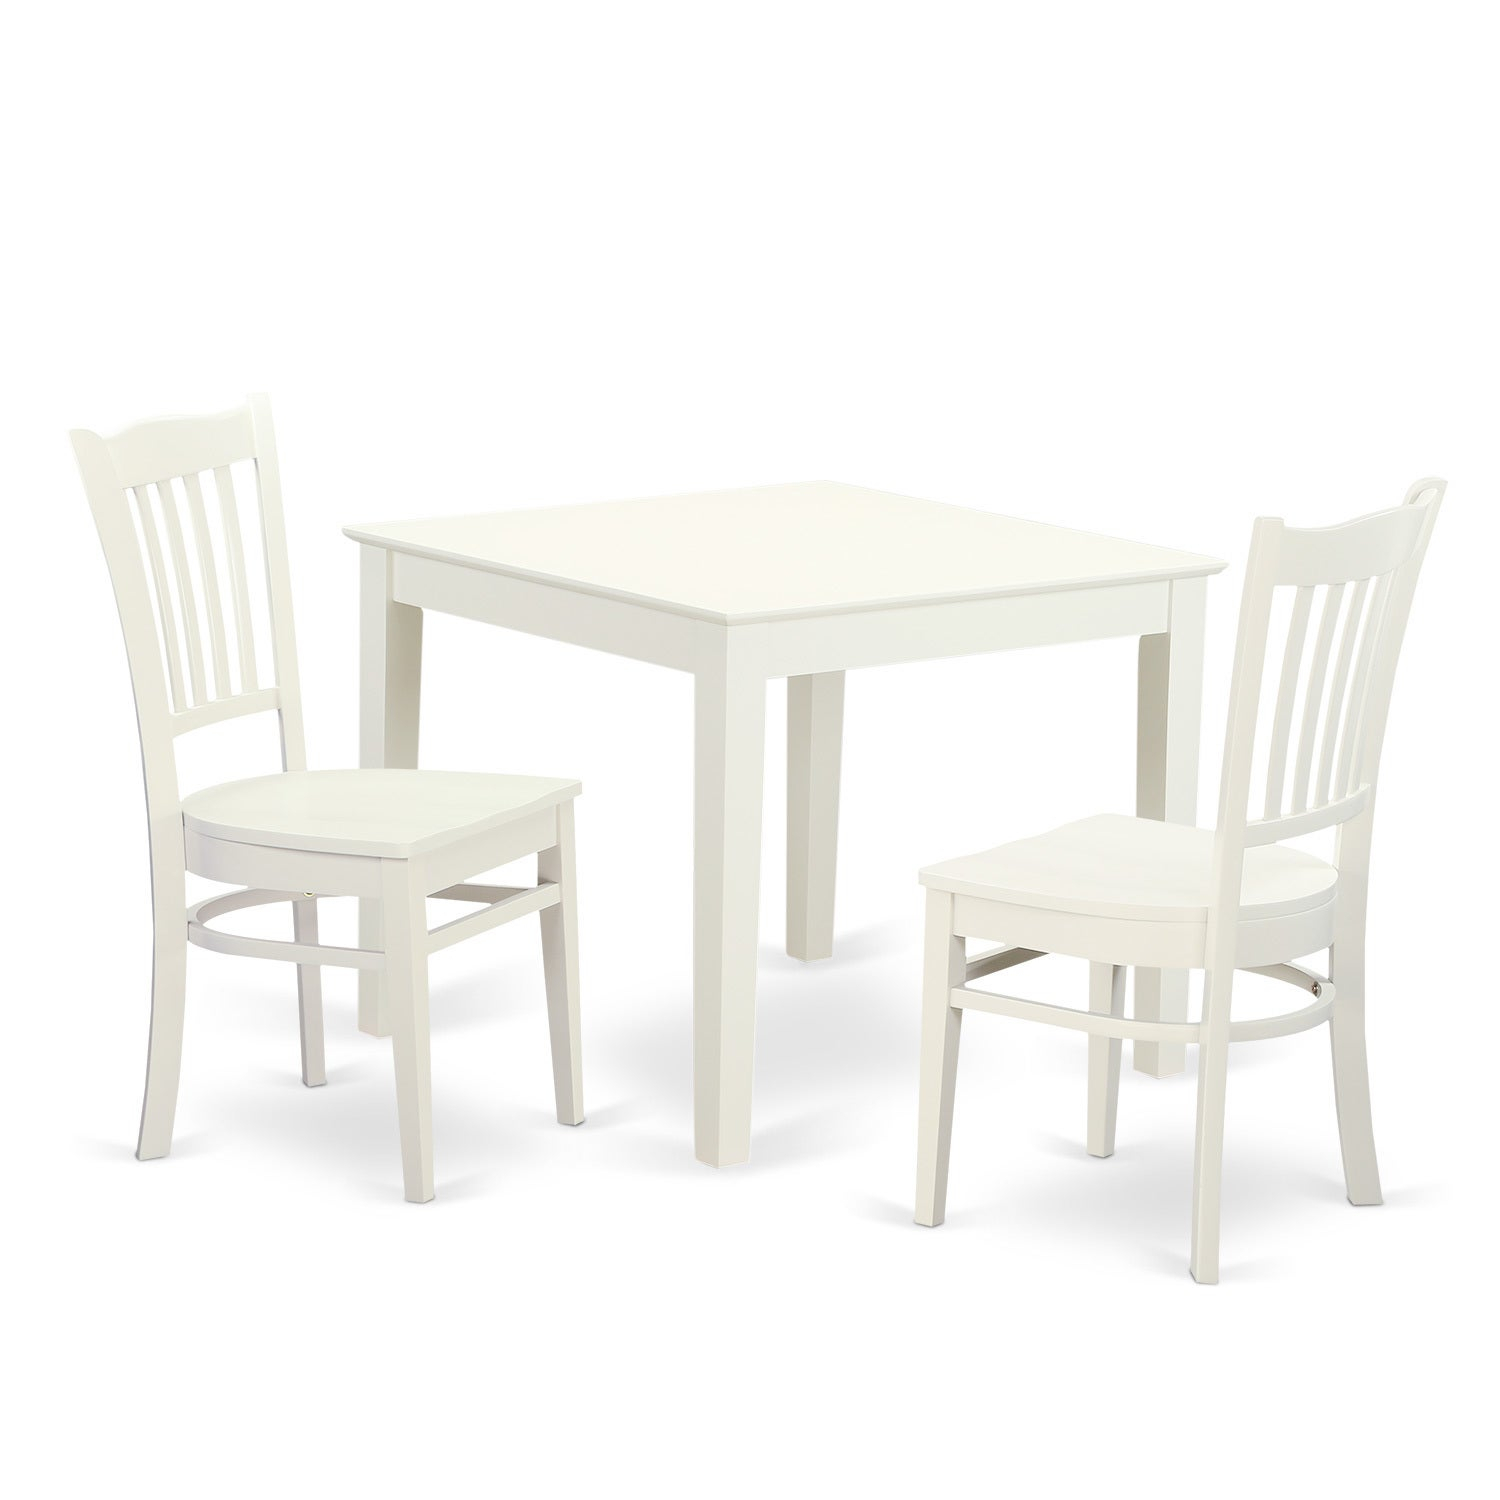 Shop Oxgr3 W 3 Piece Breakfast Nook Table And 2 Wood Dining Room Inside 2020 3 Piece Breakfast Nook Dinning Set (#17 of 20)